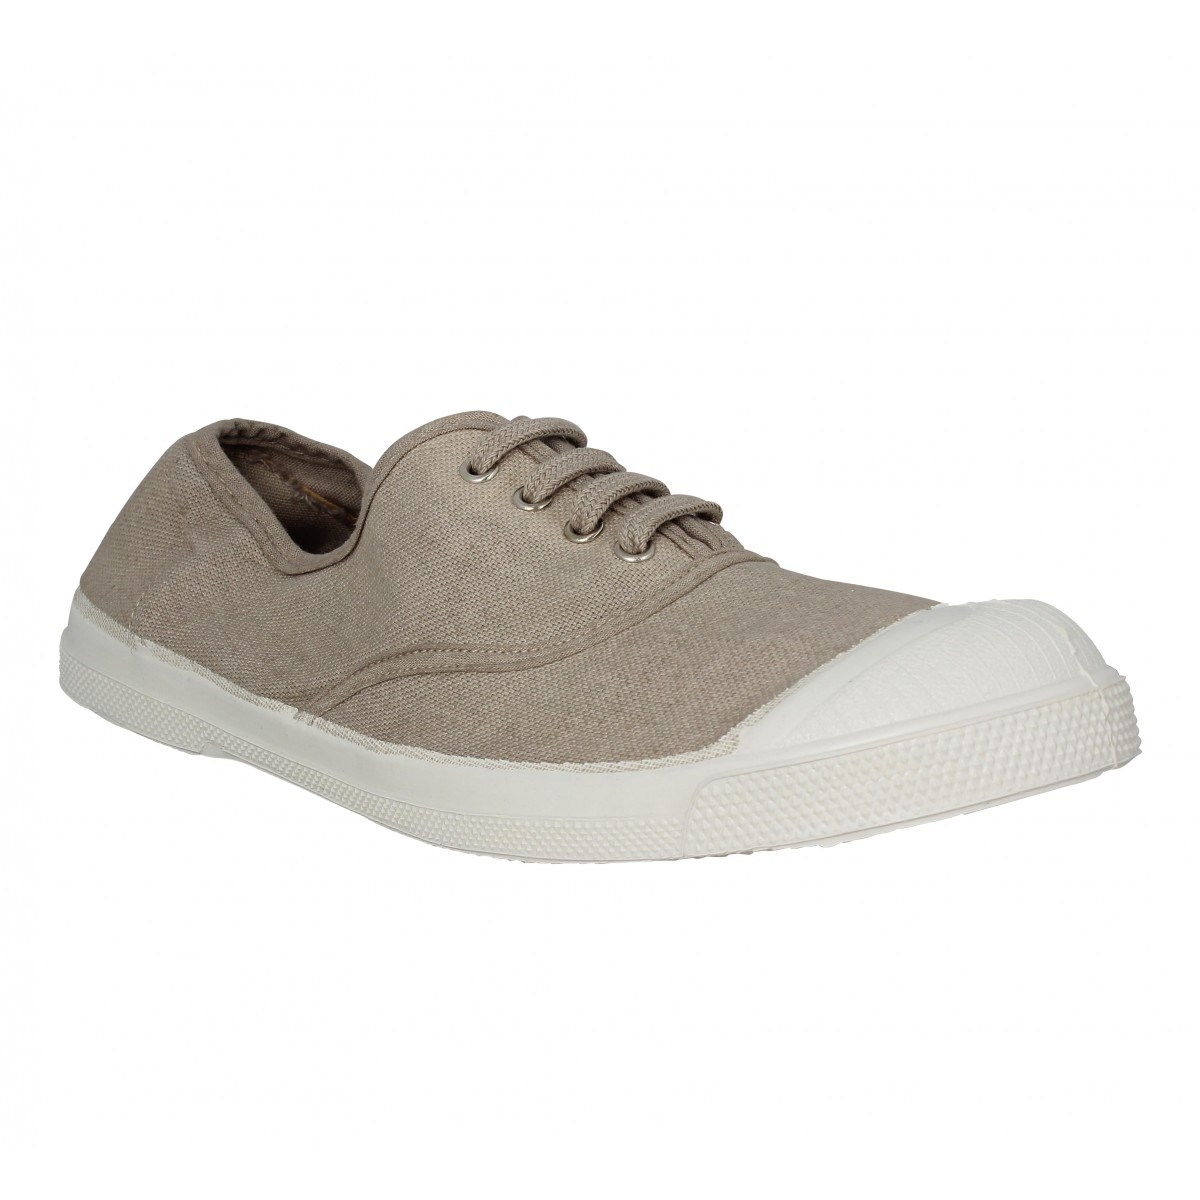 29c482f3d08030 Bensimon lacet toile femme coquille | Fanny chaussures